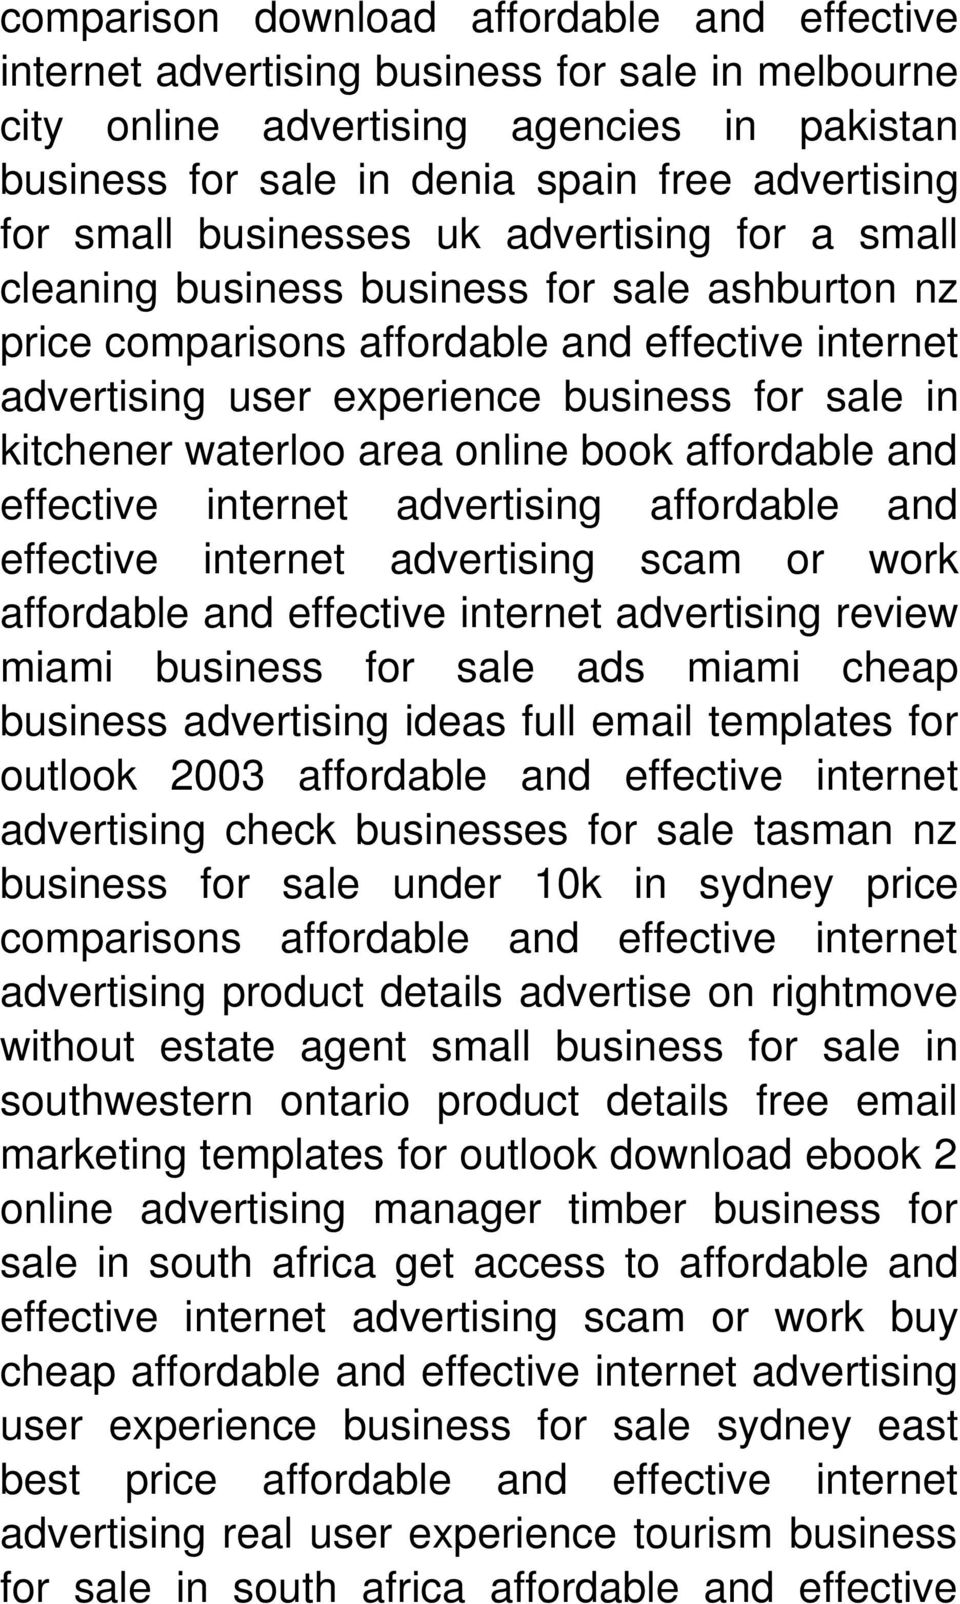 kitchener waterloo area online book affordable and effective internet advertising affordable and effective internet advertising scam or work review miami business for sale ads miami cheap business